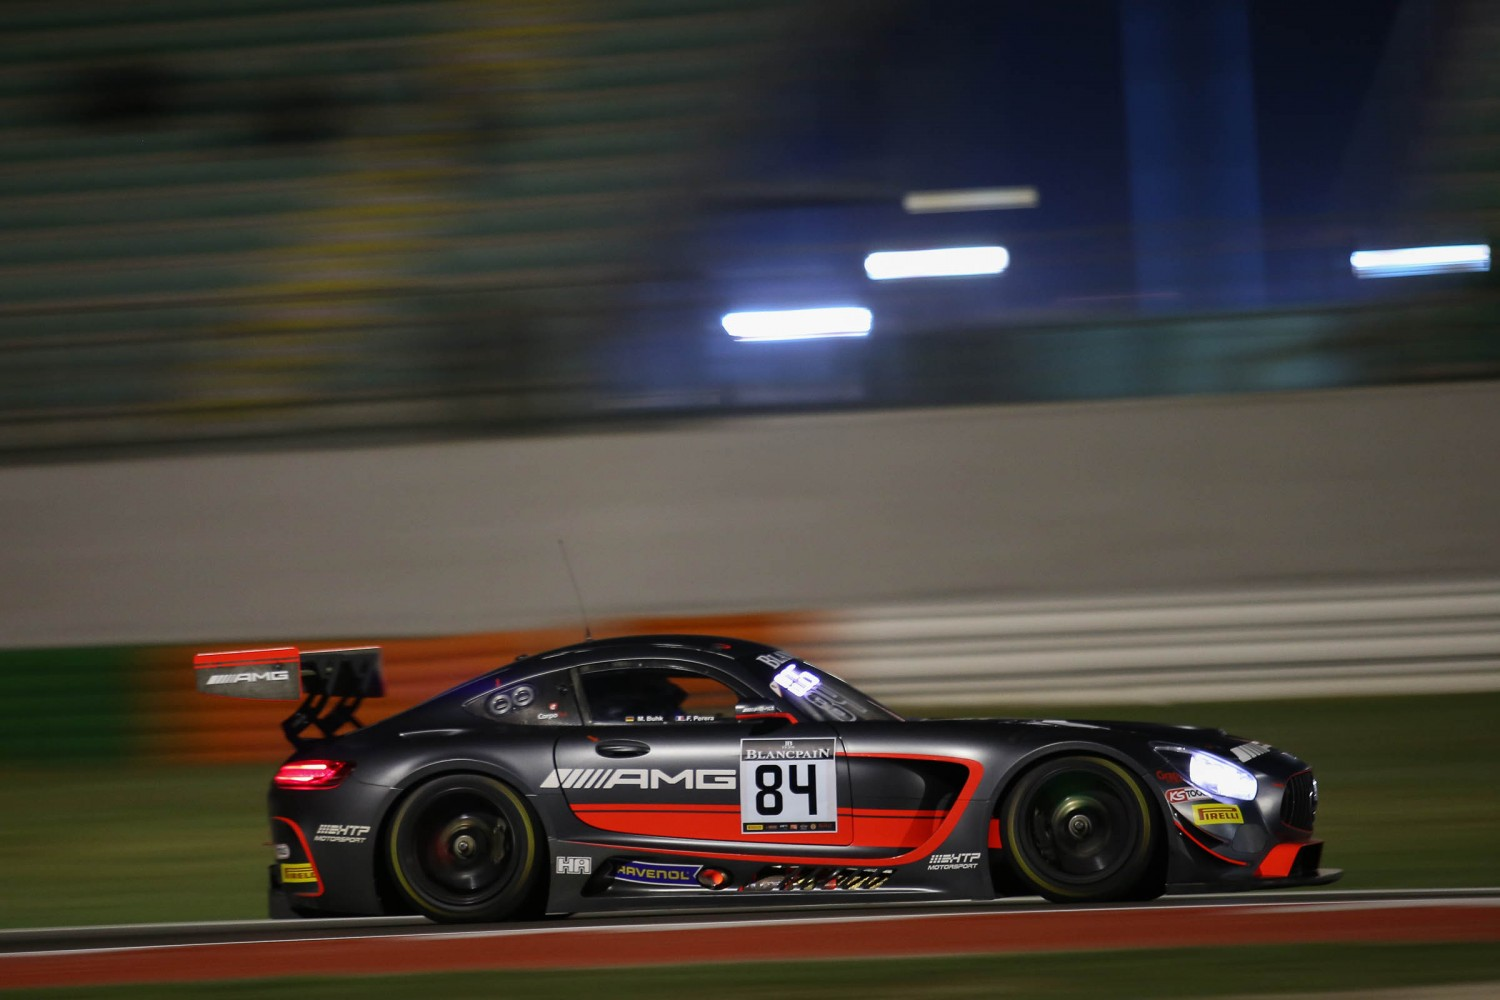 Maxi Buhk and Franck Perera win Misano Qualifying Race